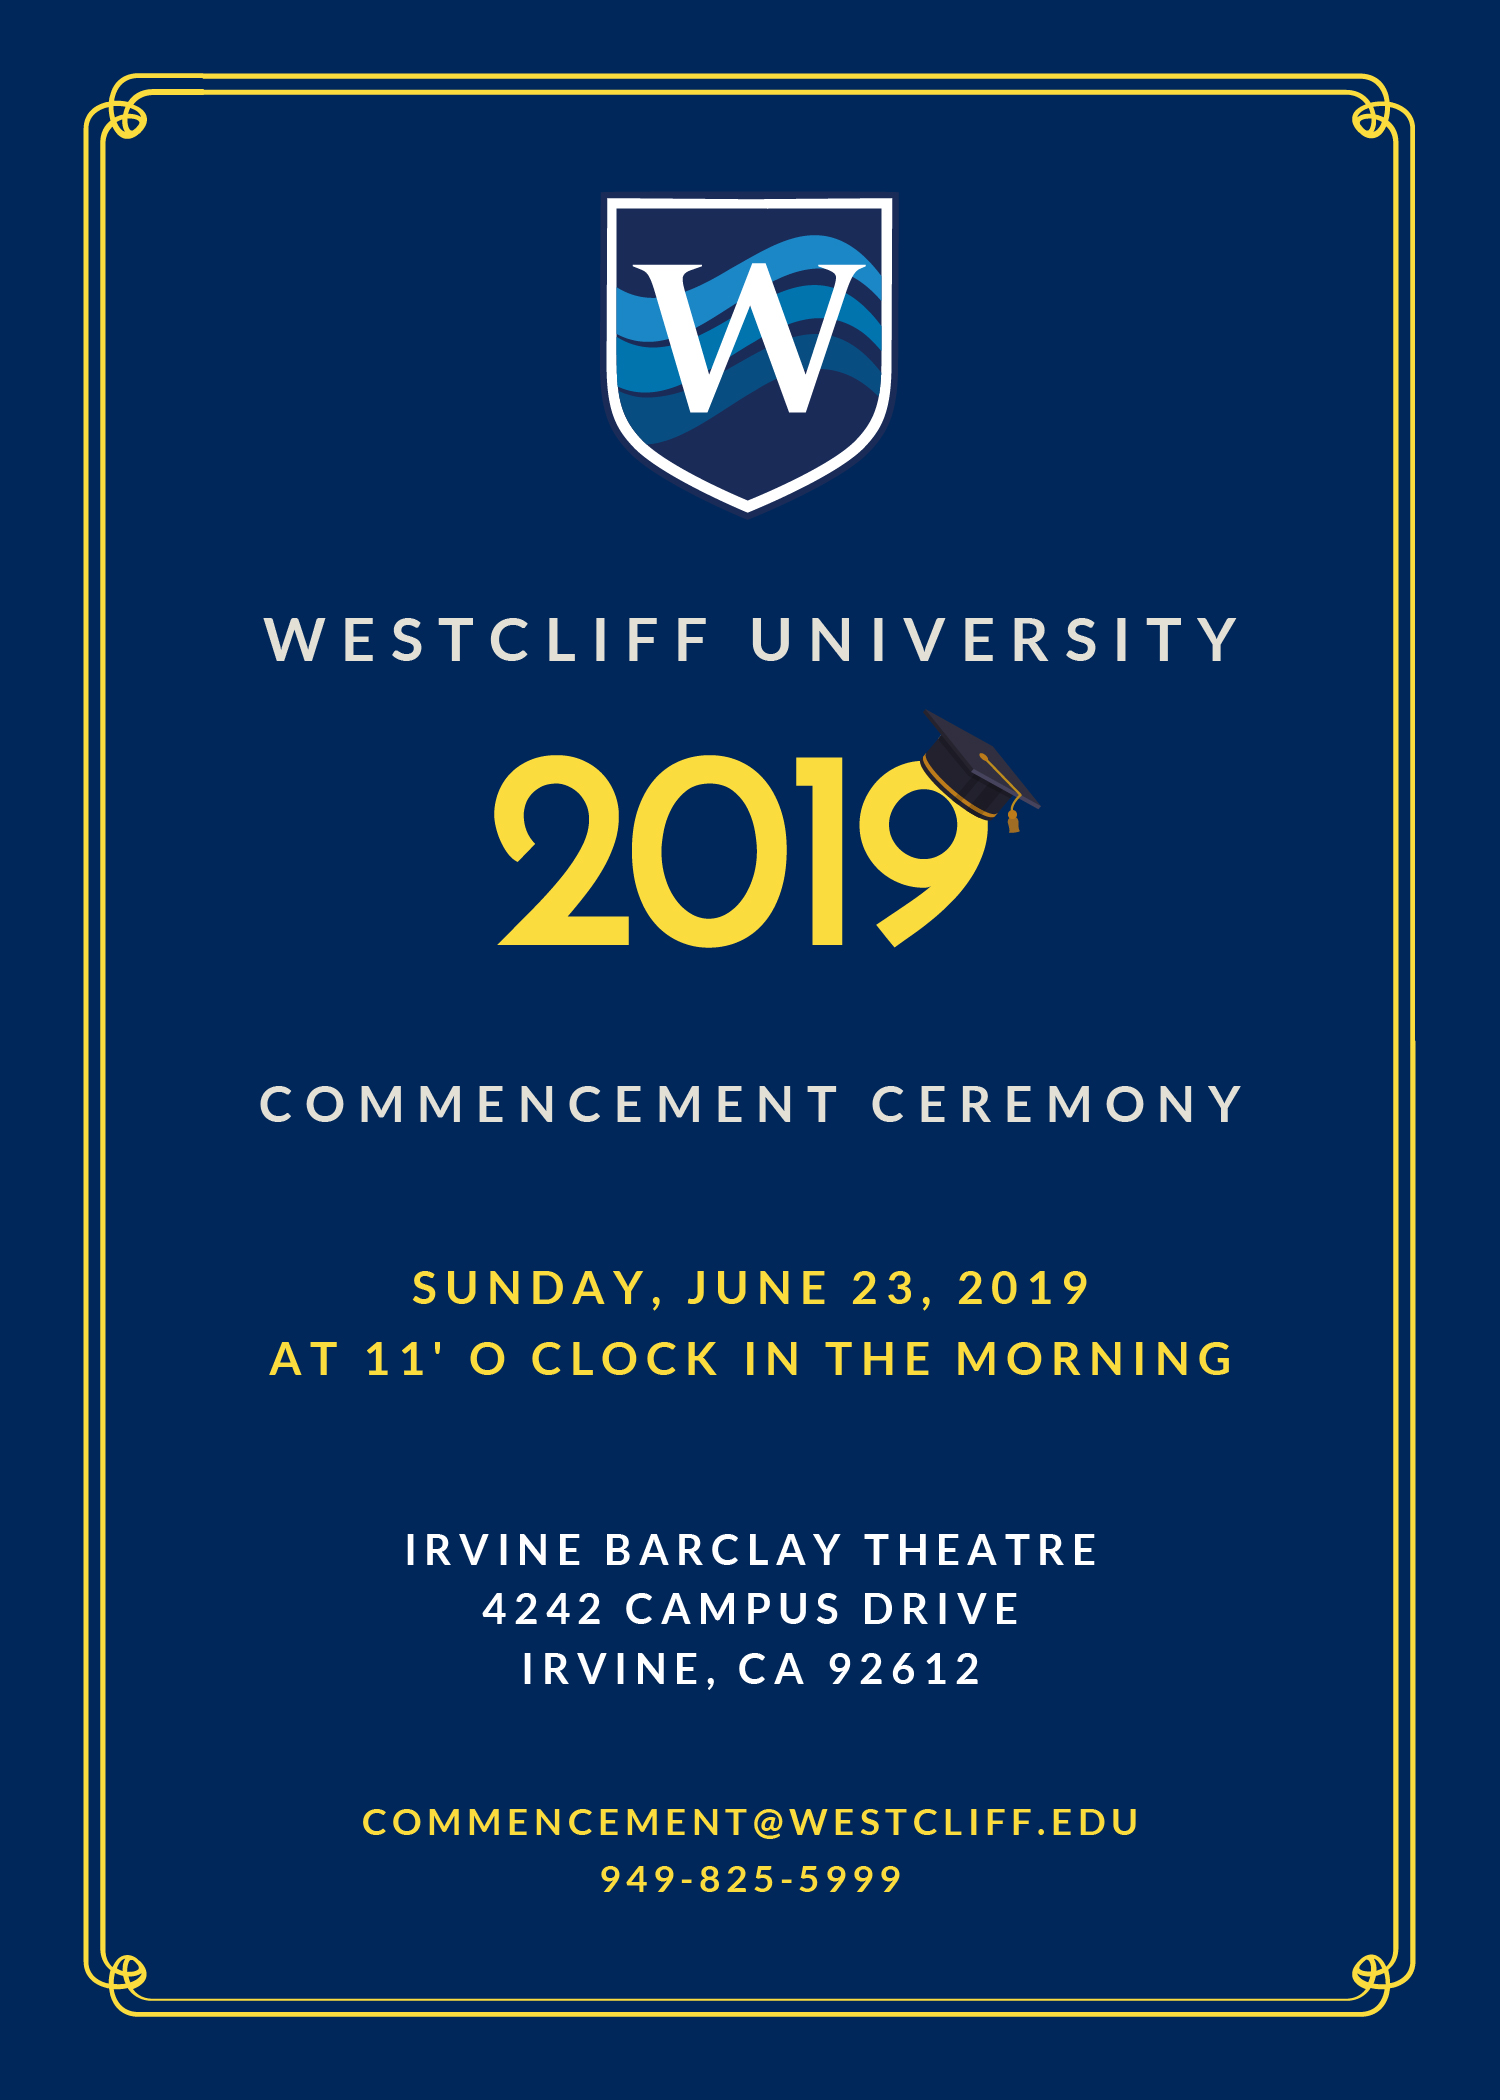 2019 Westcliff University  Commencement, 11:00 AM, Sunday, June 23rd, at  Irvine Barclay Theatre